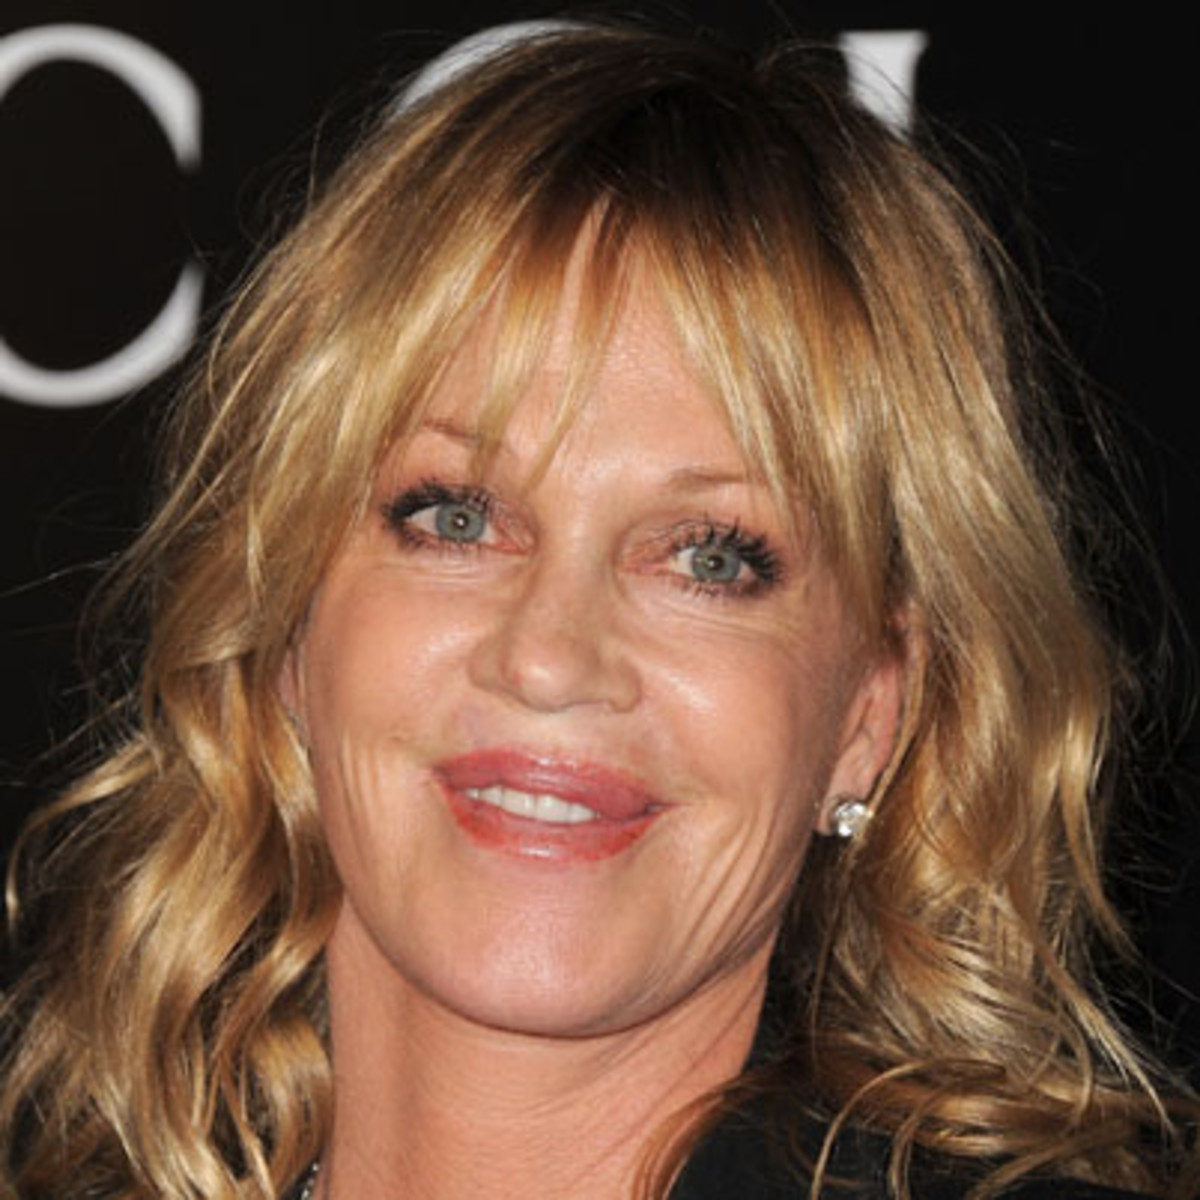 Discussion on this topic: Kimberly Kane, catherine-hicks-born-august-6-1951-age/